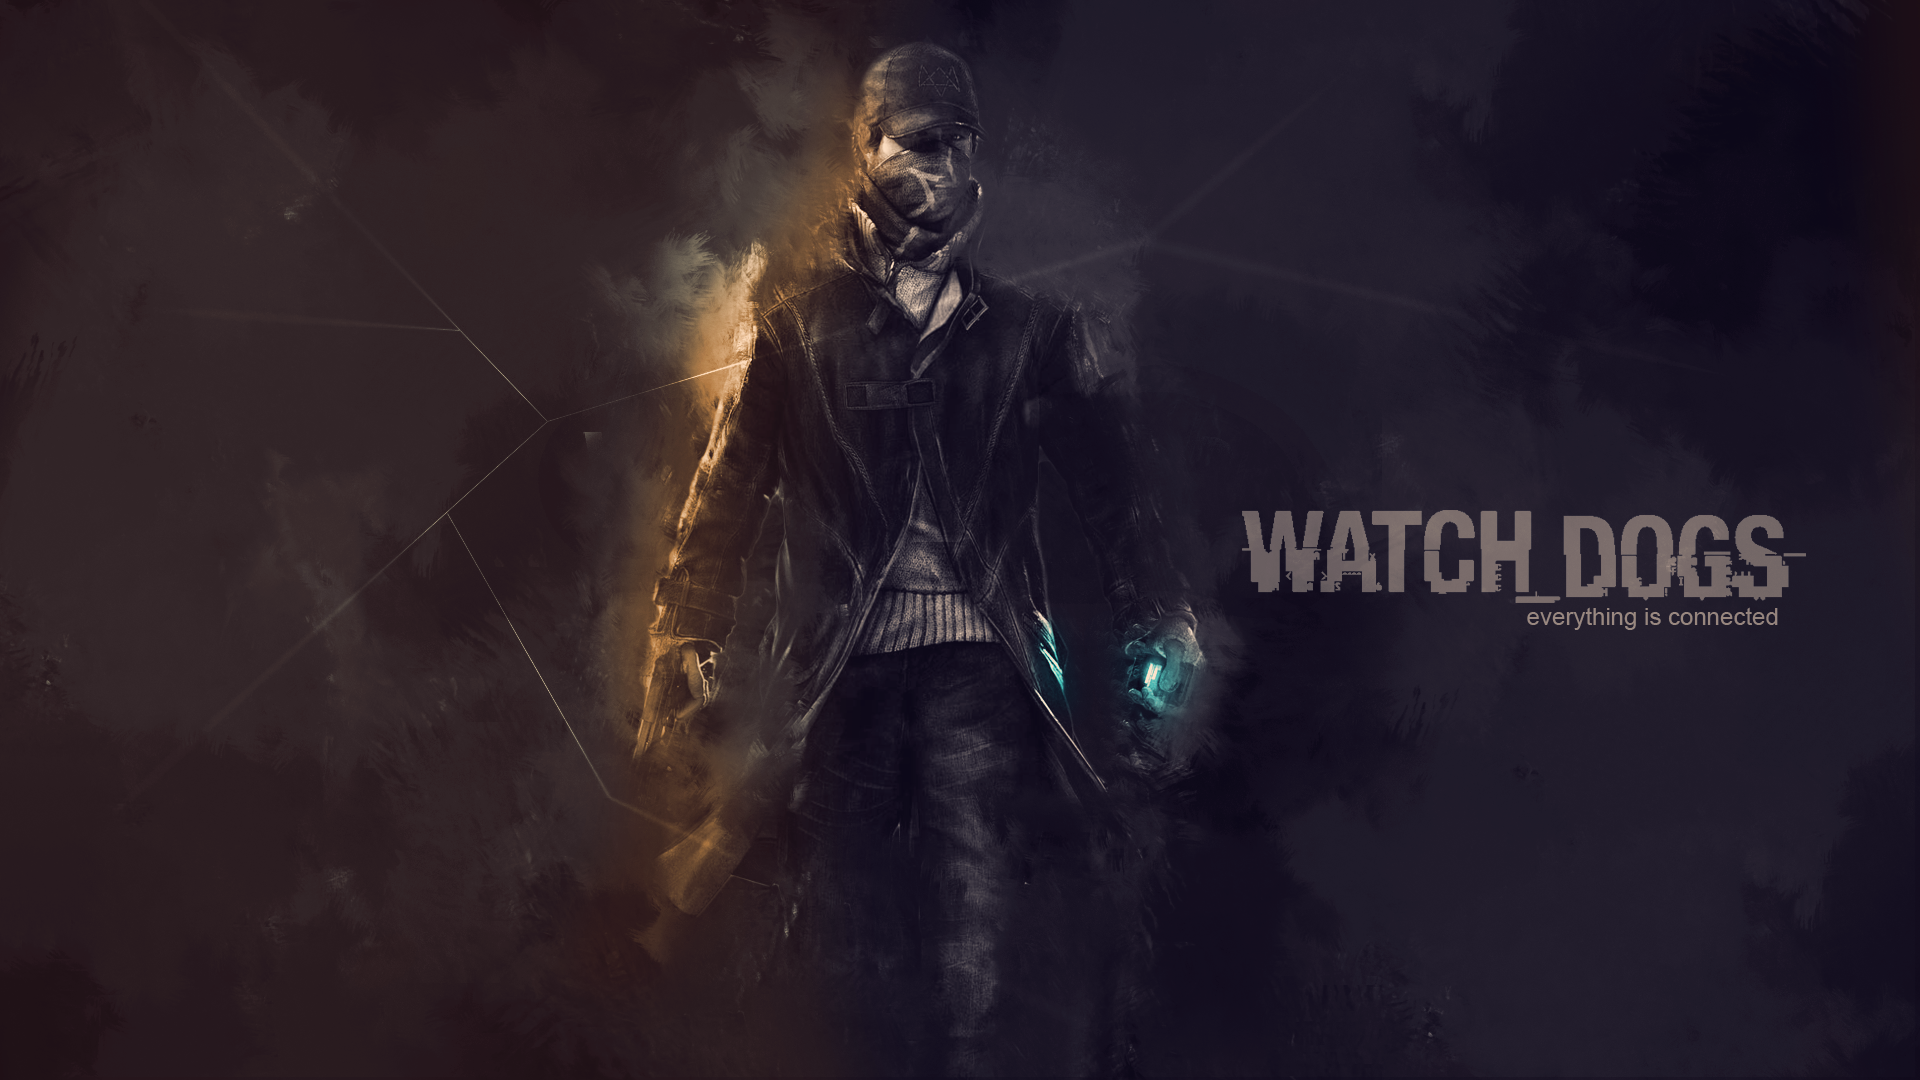 watch_dogs_wallpaper_by_wslyhf-d7k6tmp.png